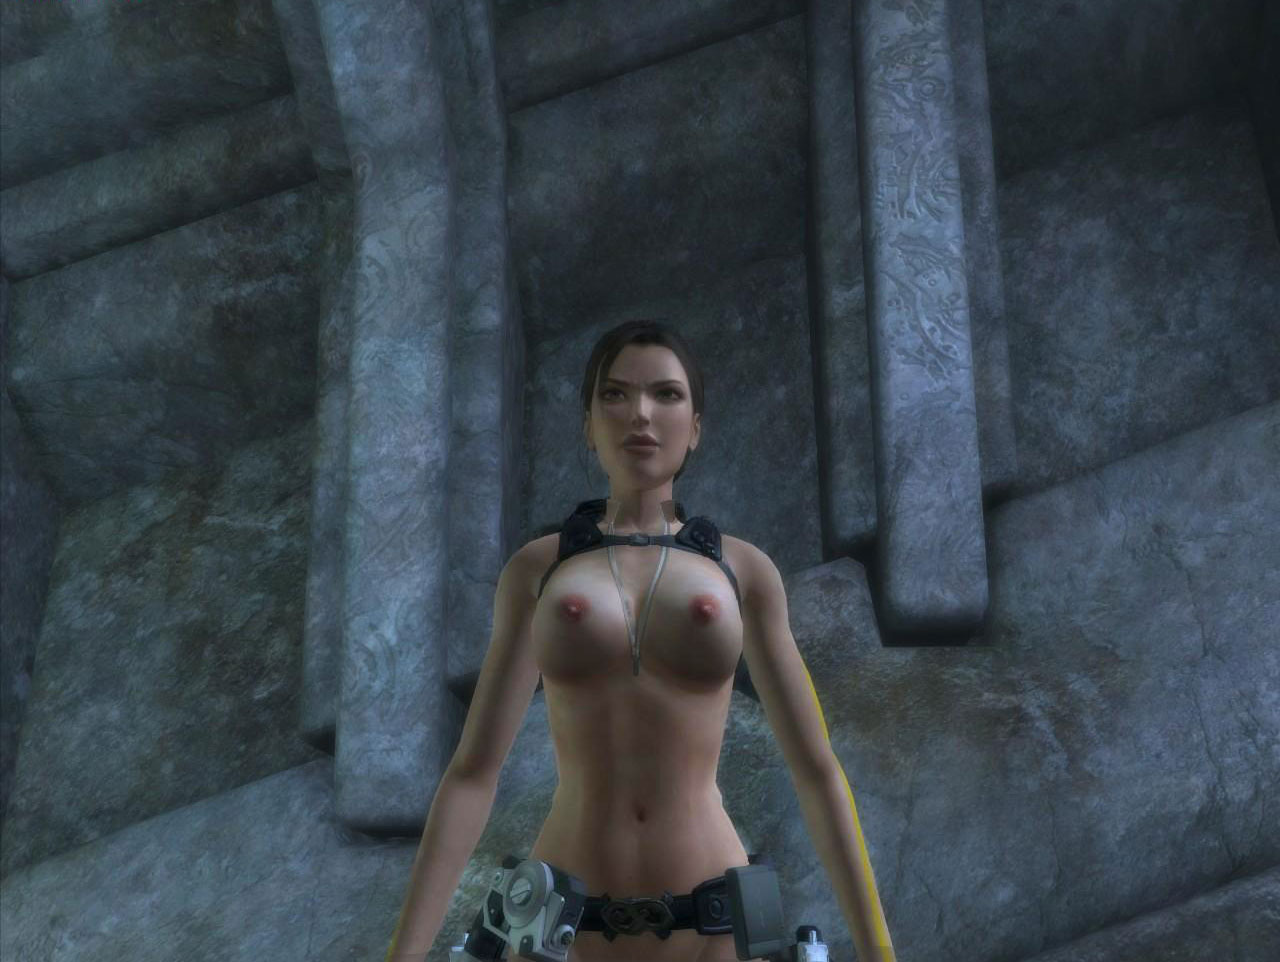 Lara croft legend amanda naked exposed pic